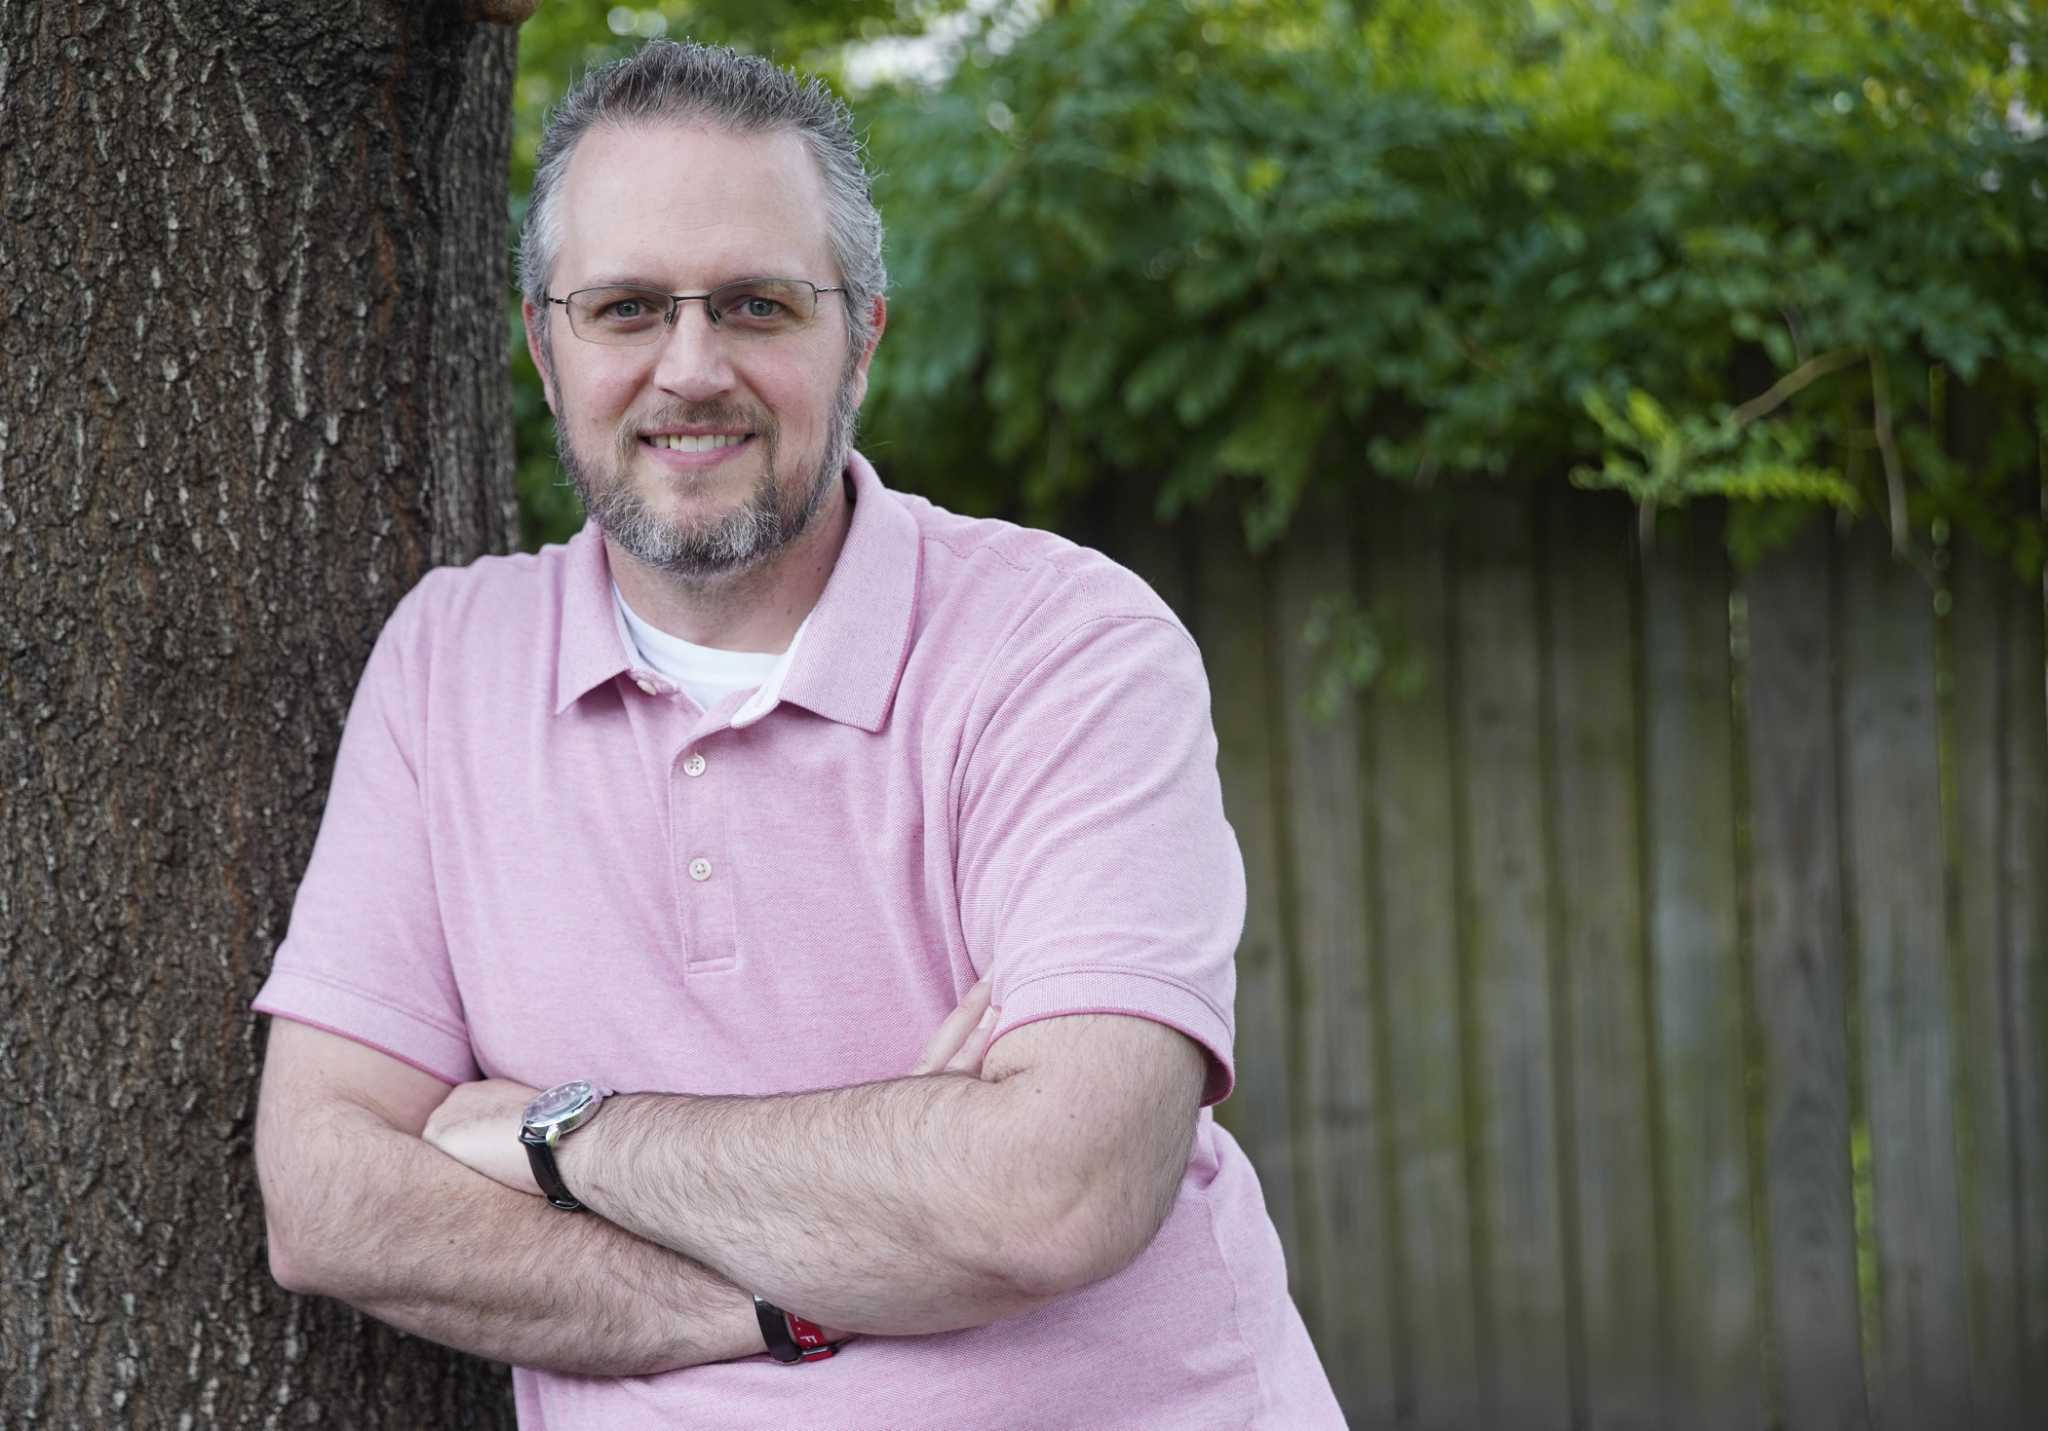 Rare But Not Impossible Male Breast Cancer Remains Low But